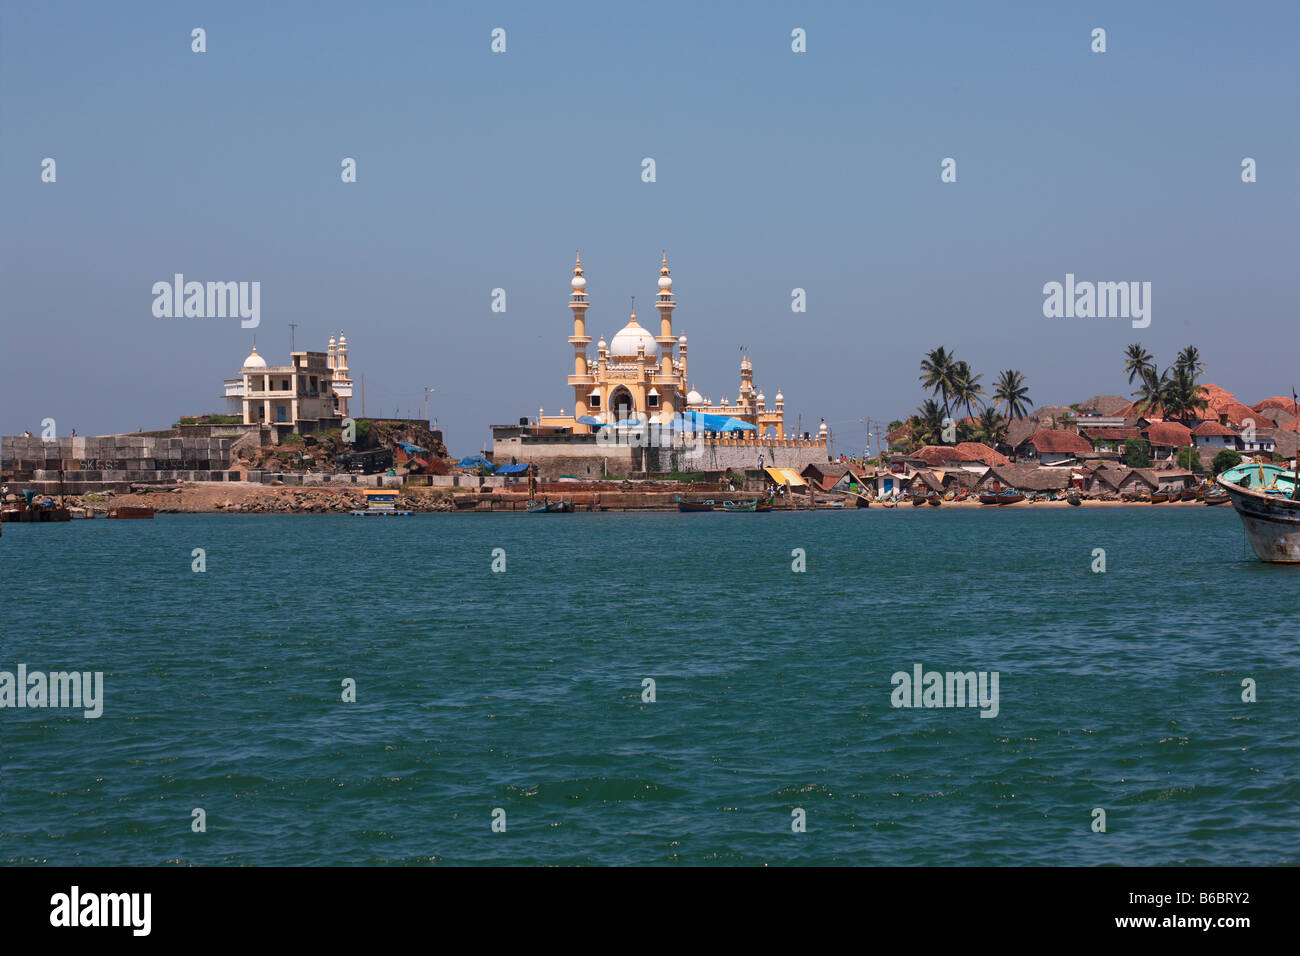 Vizhinjam village in kerala,india - Stock Image